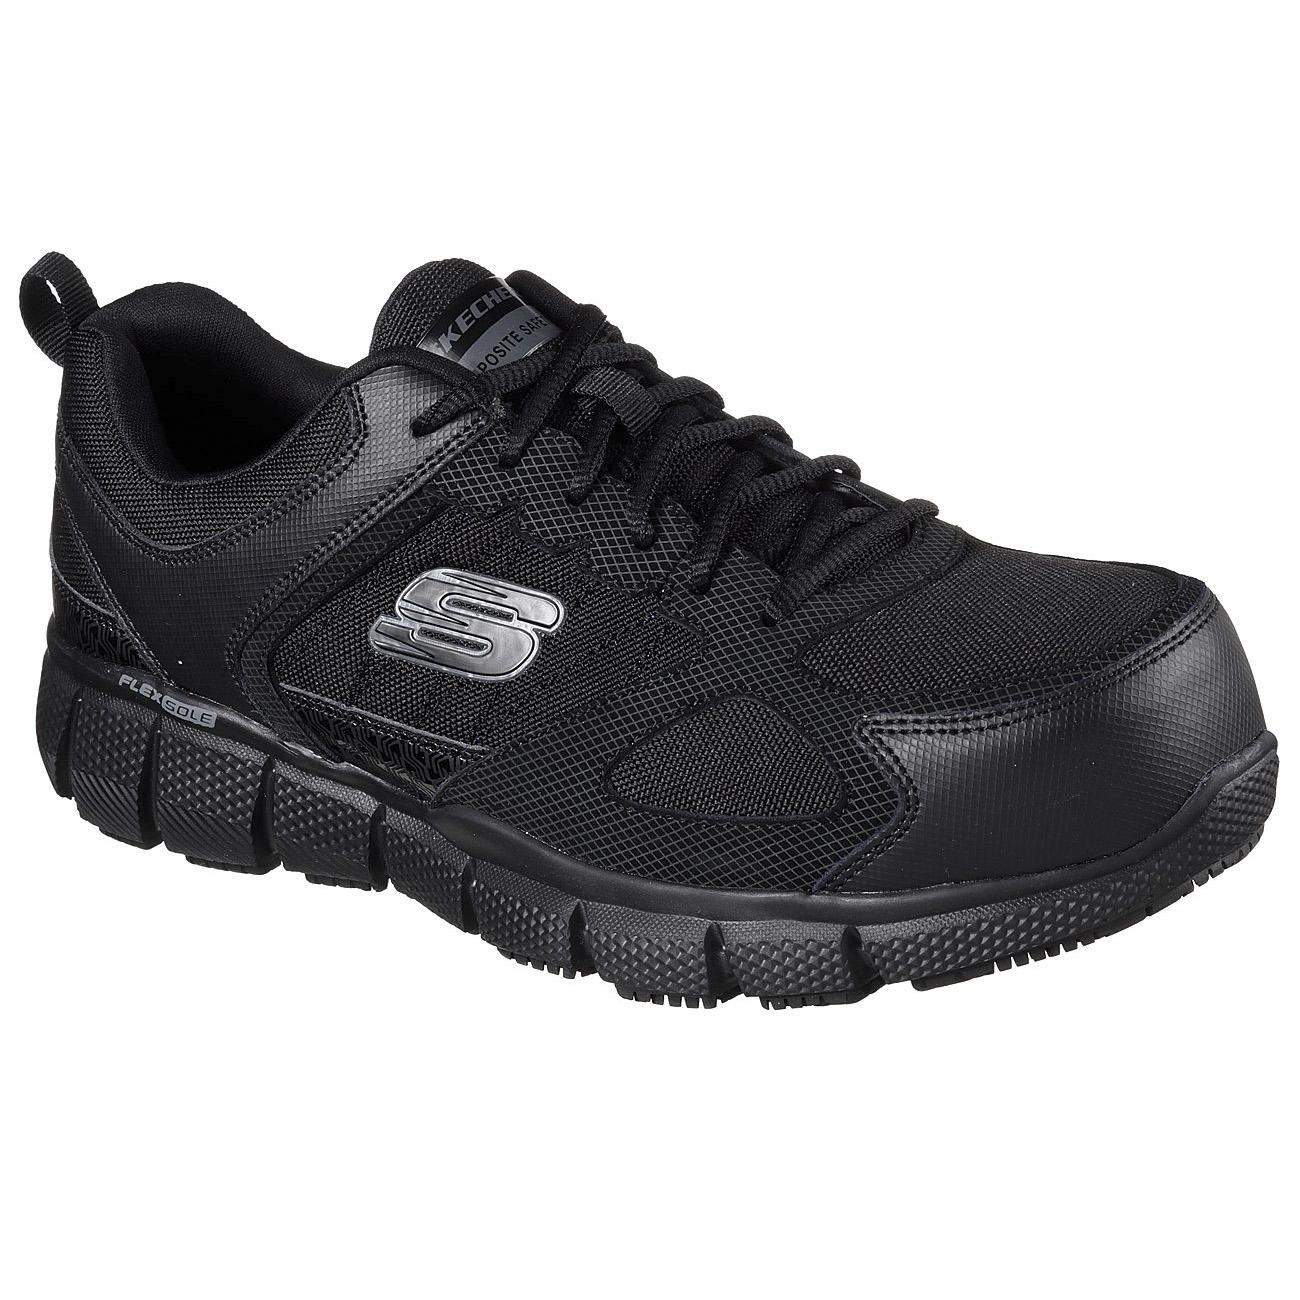 Skechers Work 77132 Blk Telfin Composite Toe Safety Shoes By Hardwarecity Online Store.